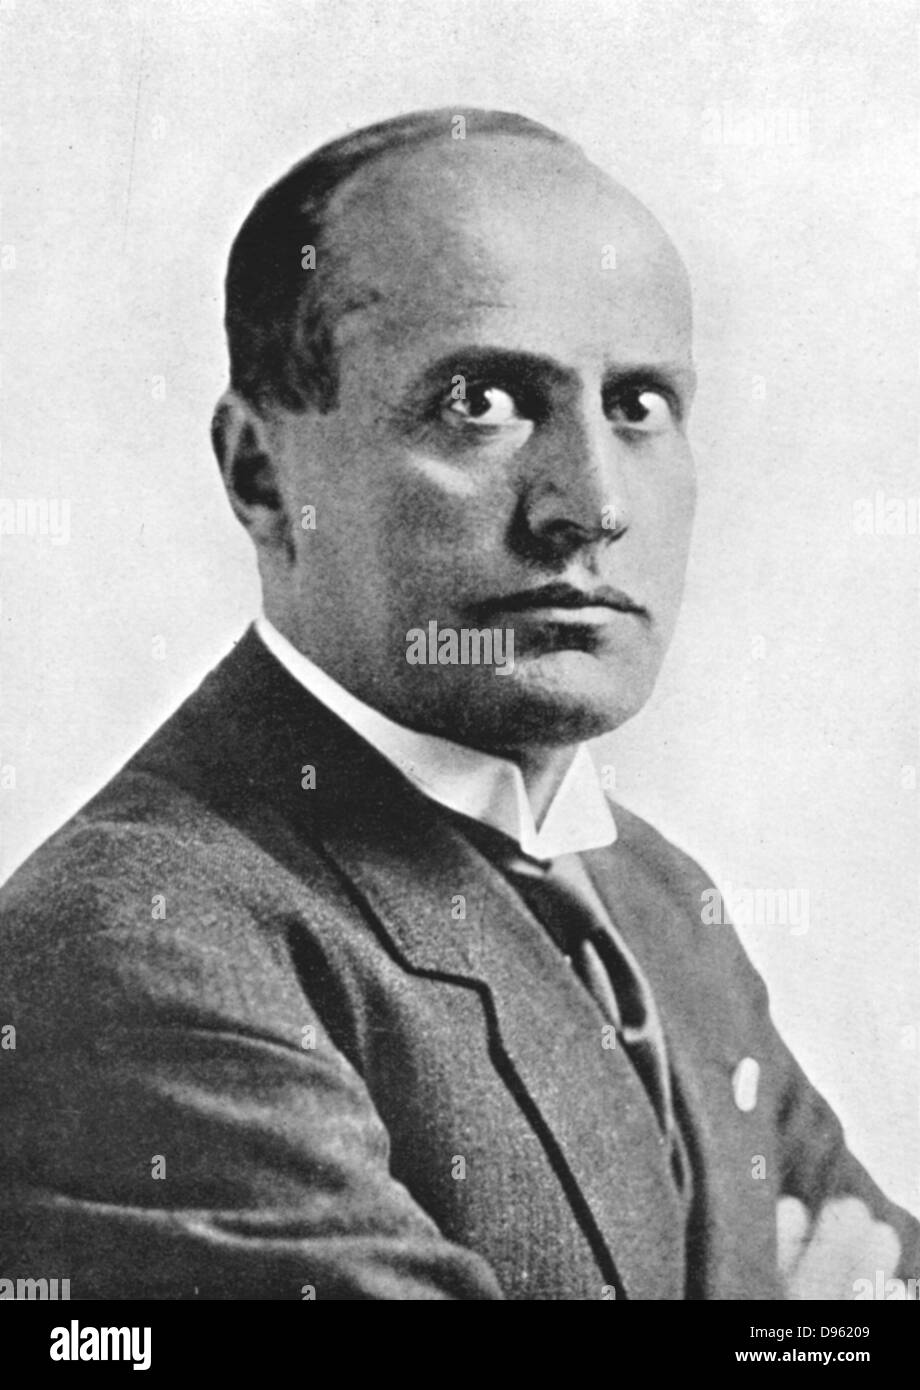 a biography of benito mussolini an italian historical figure Benito mussolini biography   benito mussolini was head of the italian government from 1922 to 1943  left mussolini an unimportant figure in world politics,.